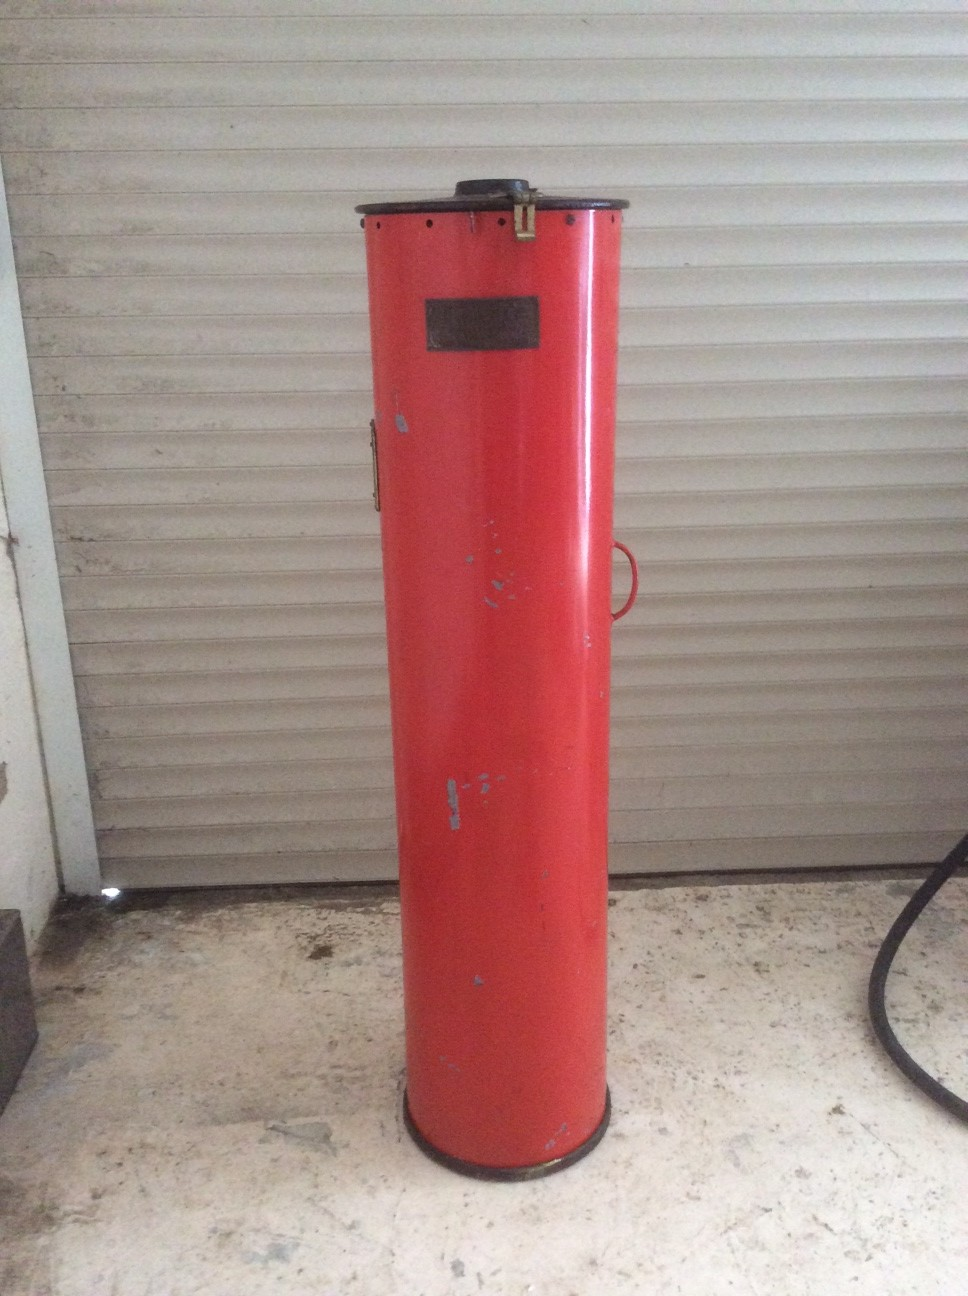 Unrestored Godwin Cylinder Petrol Pump